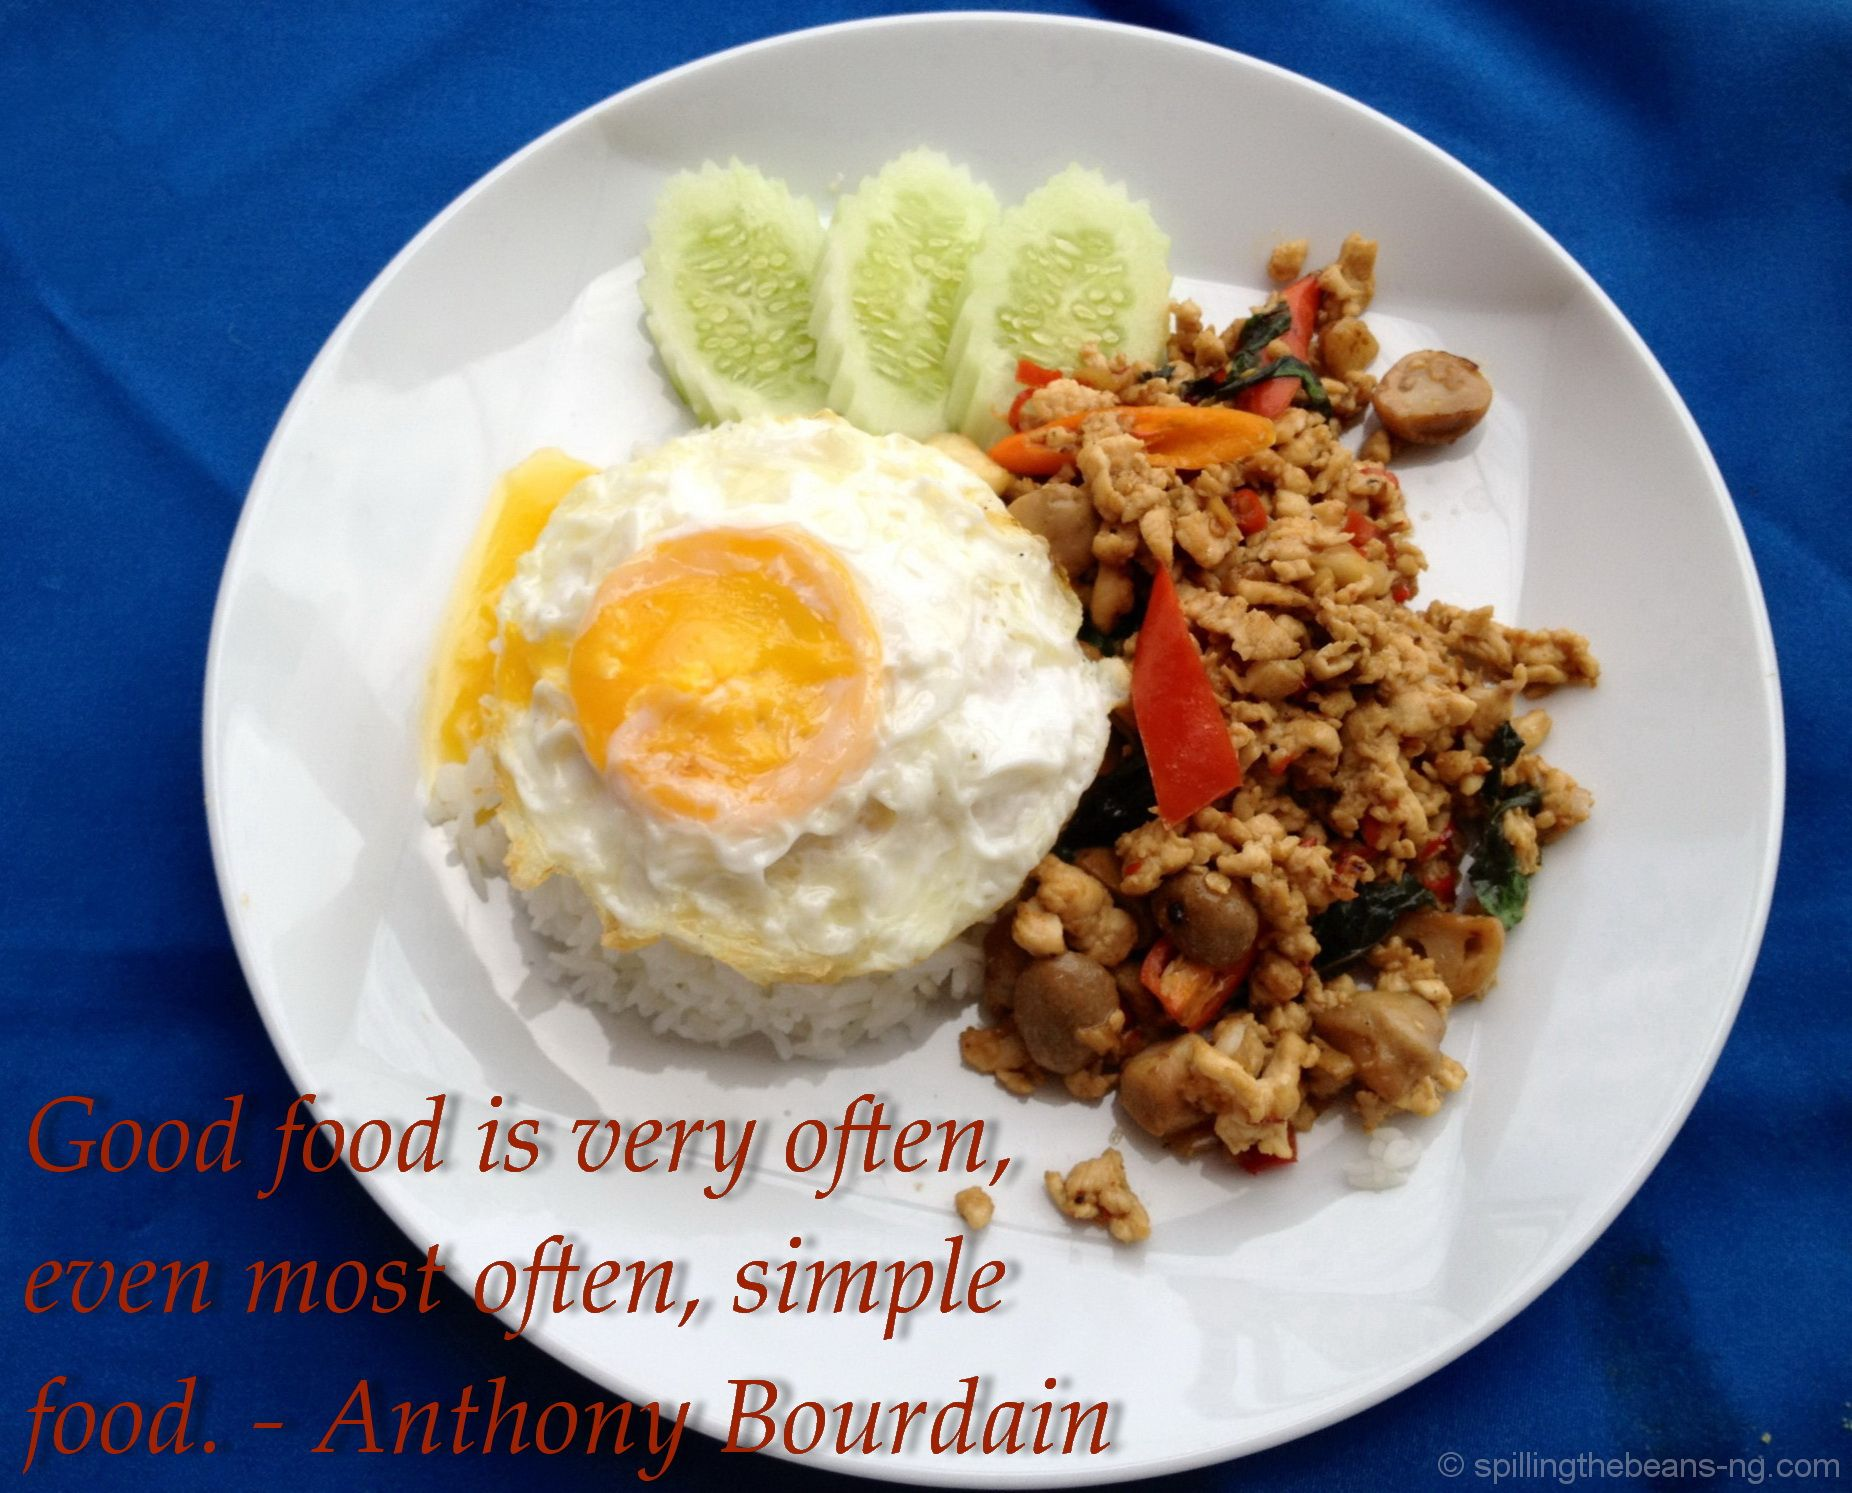 Good food is very often even most often simple food